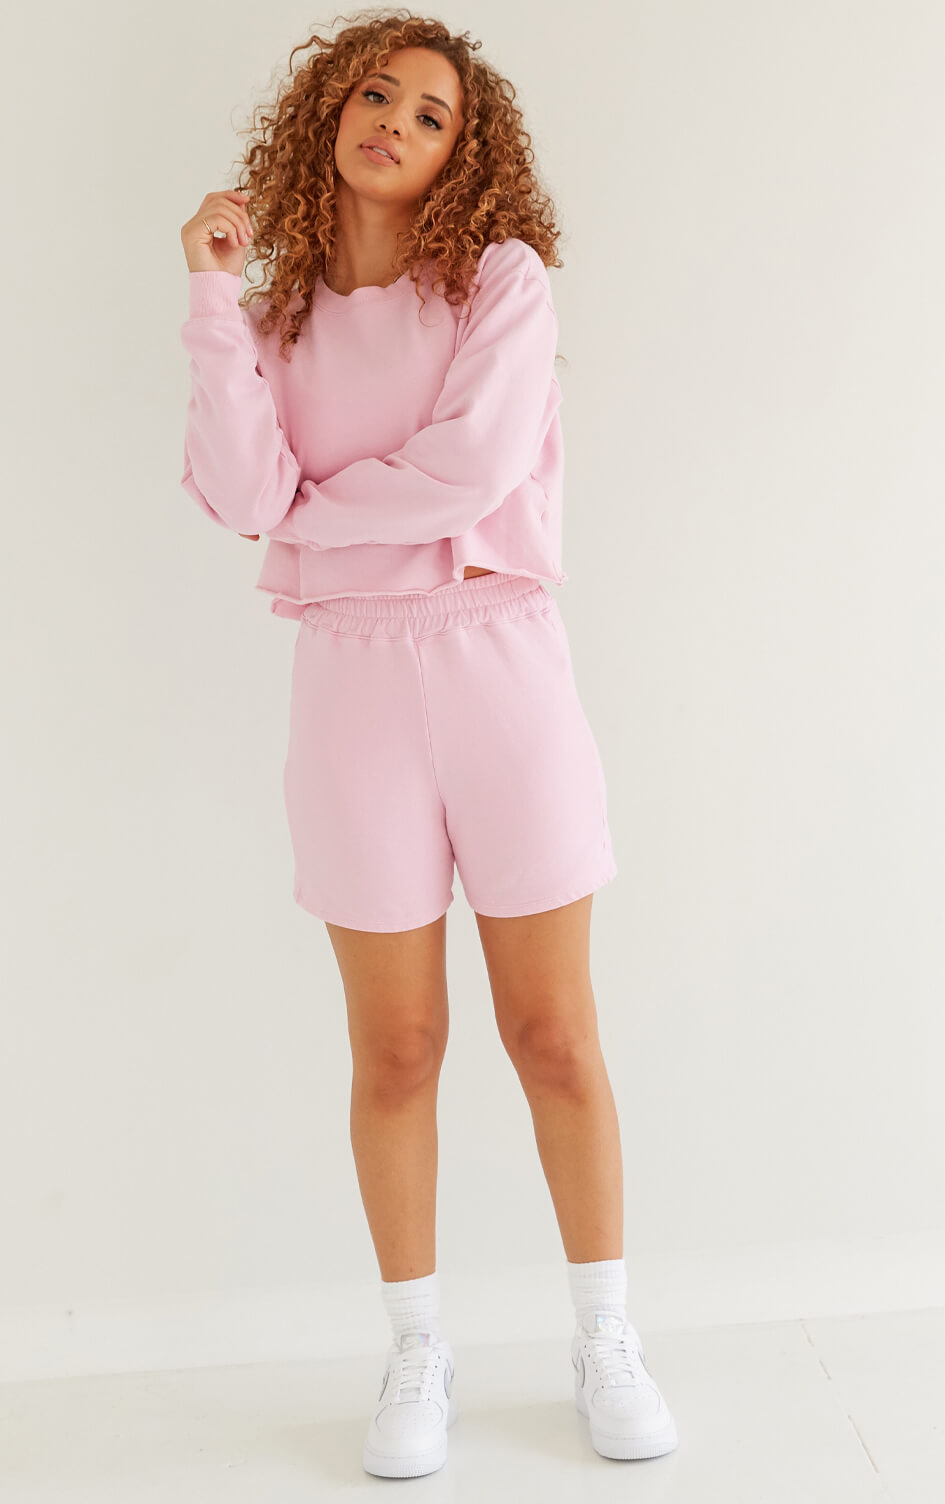 shop-dana-scott-sweet-like-candy-collection-bazooka-fleece-scott-sweatshort